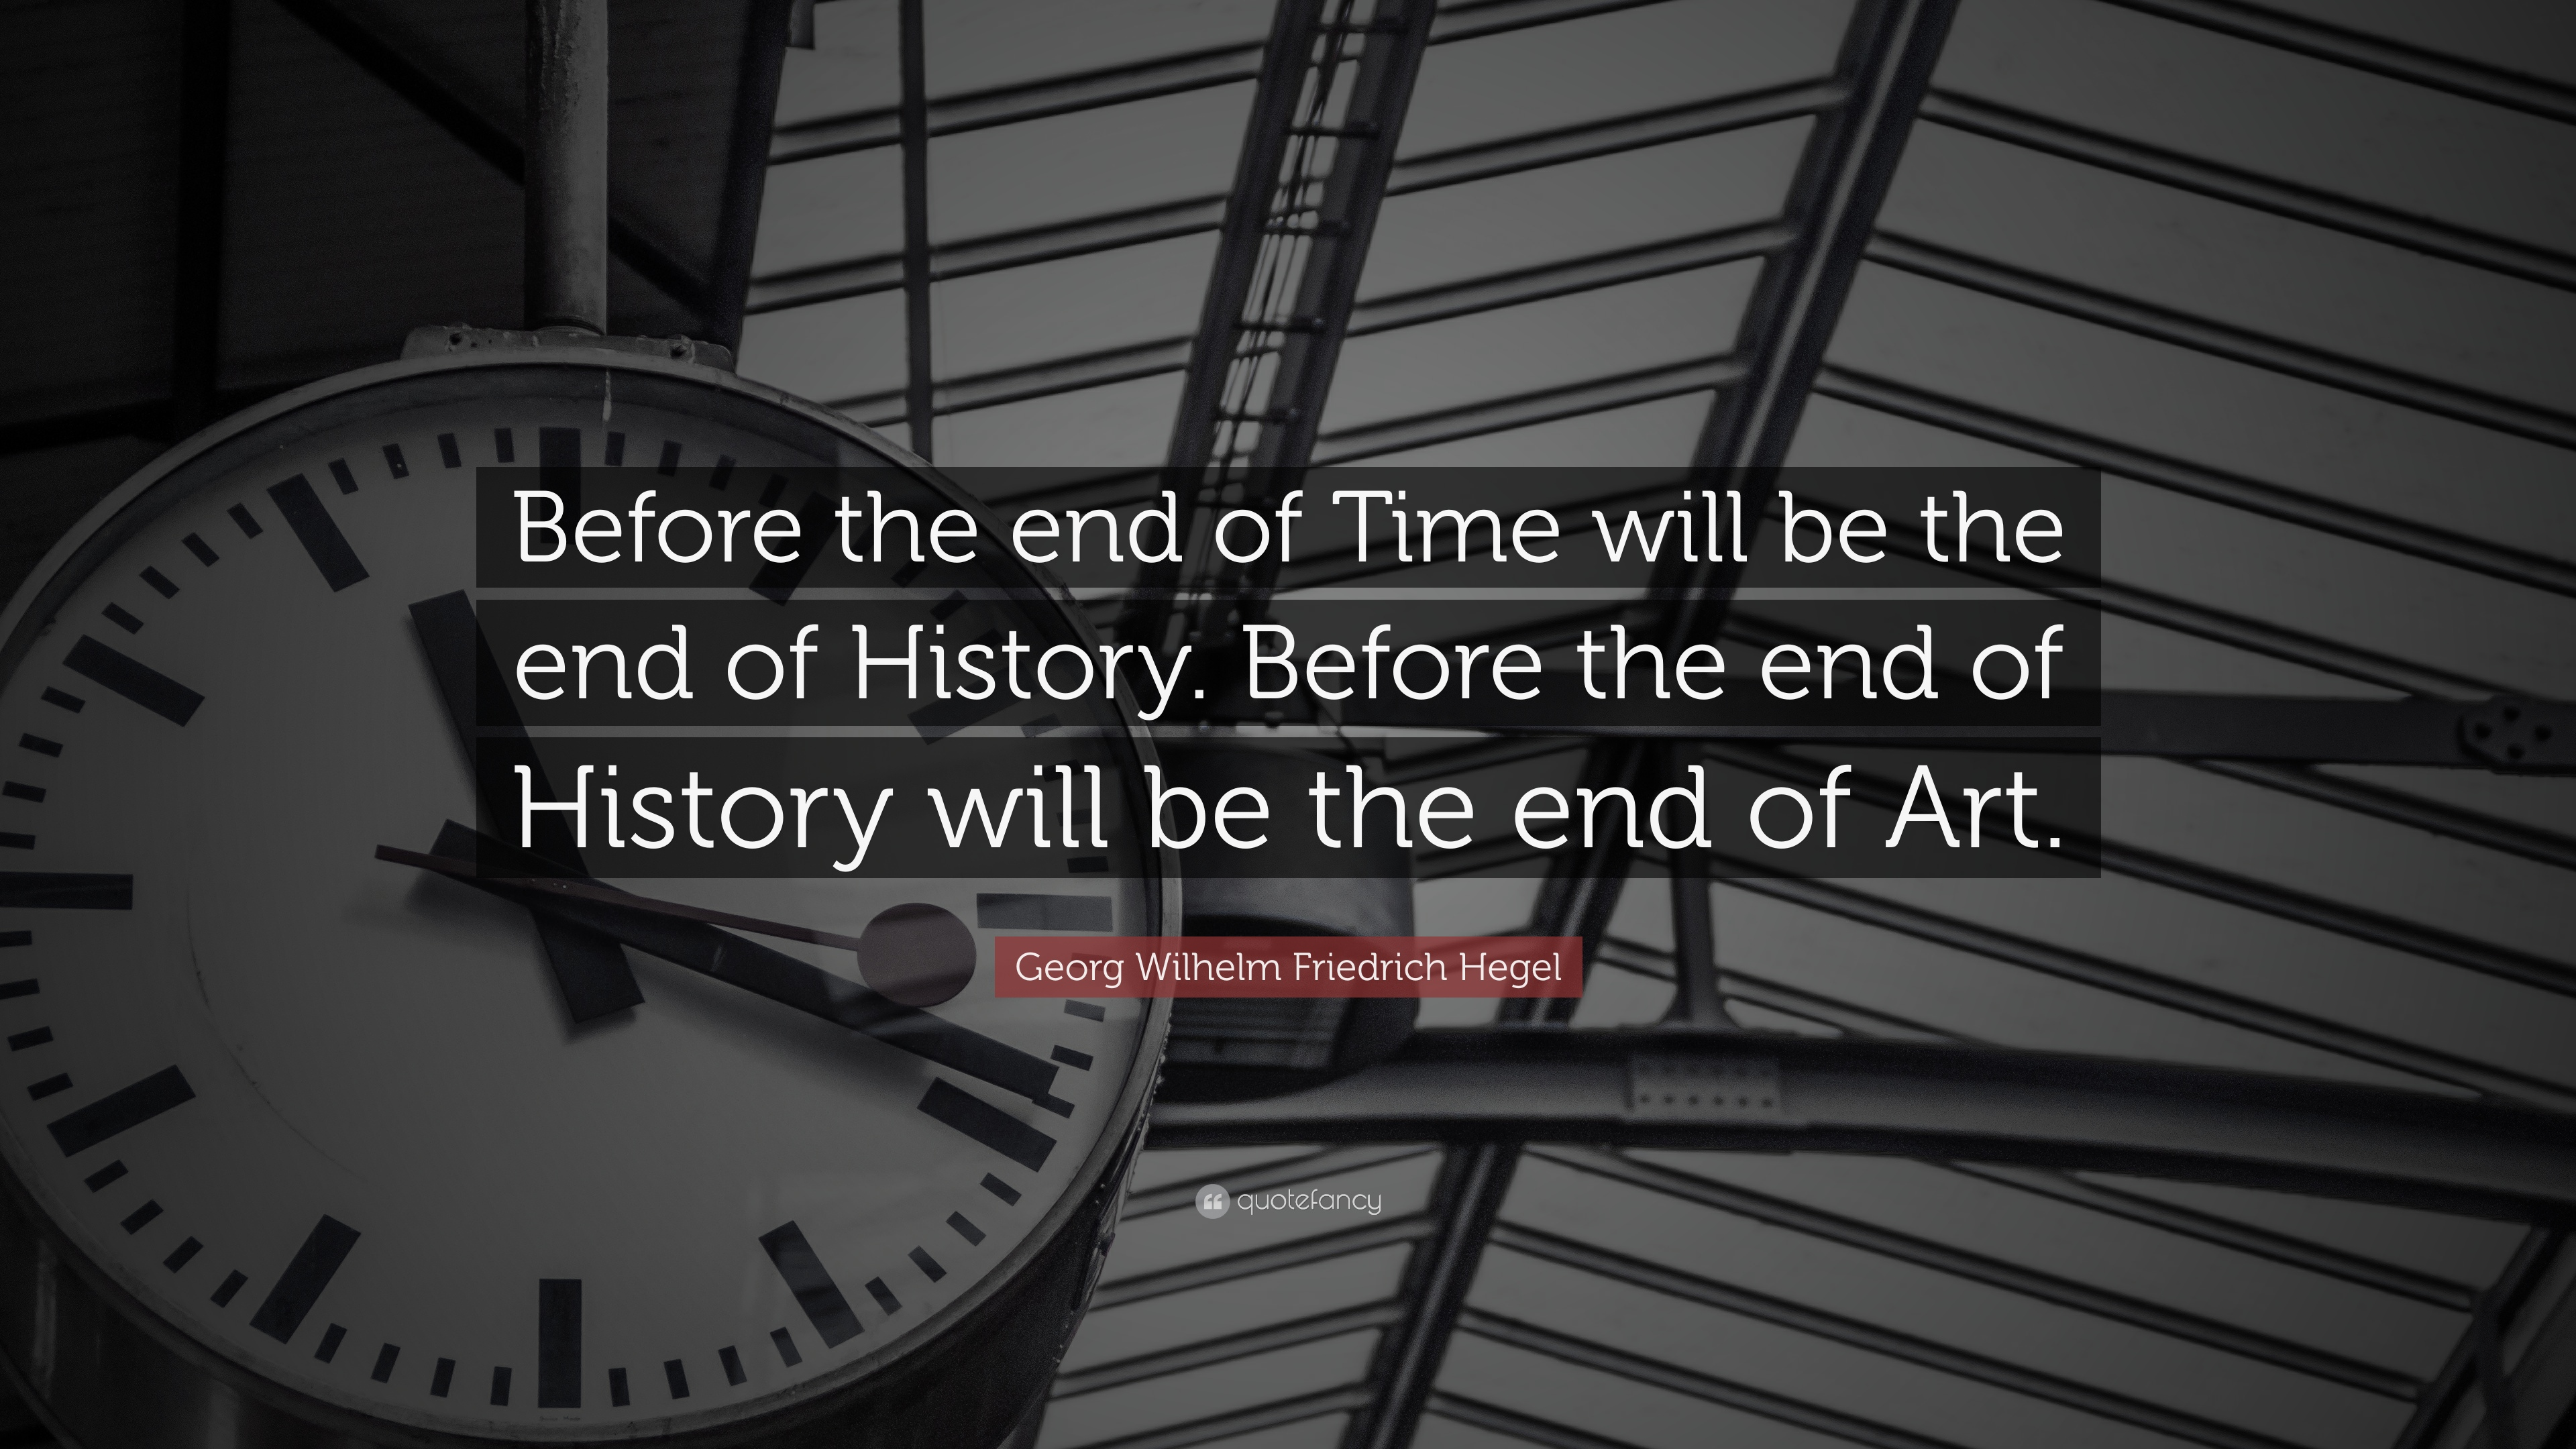 Hegel, Evil, and the End of History